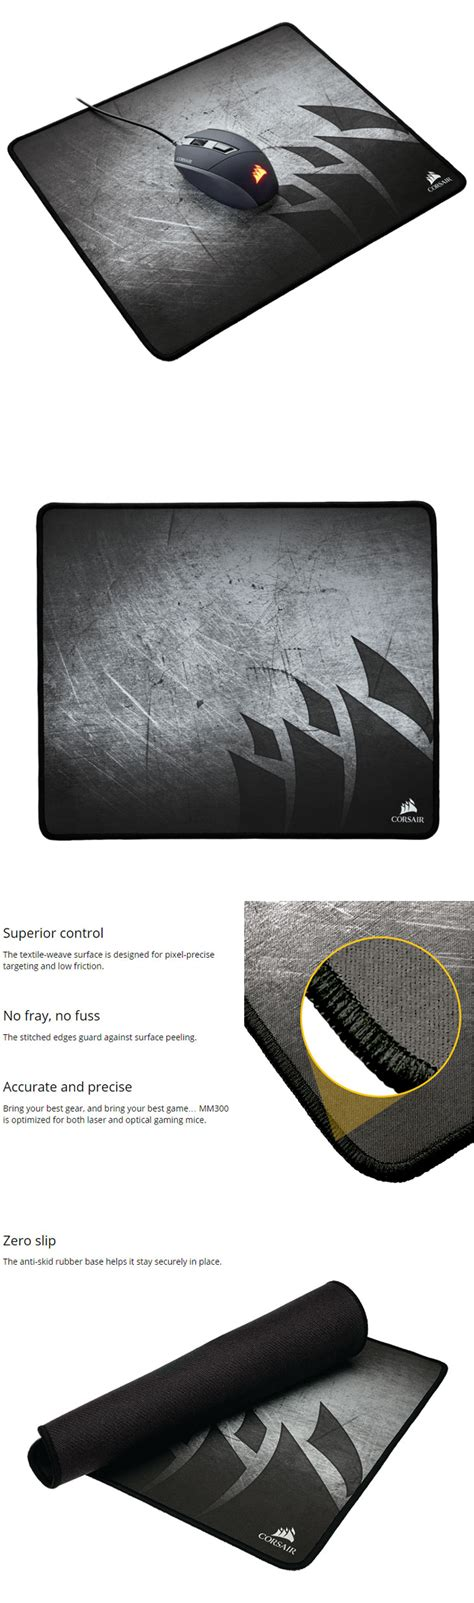 Mouse Pad Gaming Corsair Mm300 Anti Fray Cloth Small Edition corsair mm300 mouse pad best deal south africa